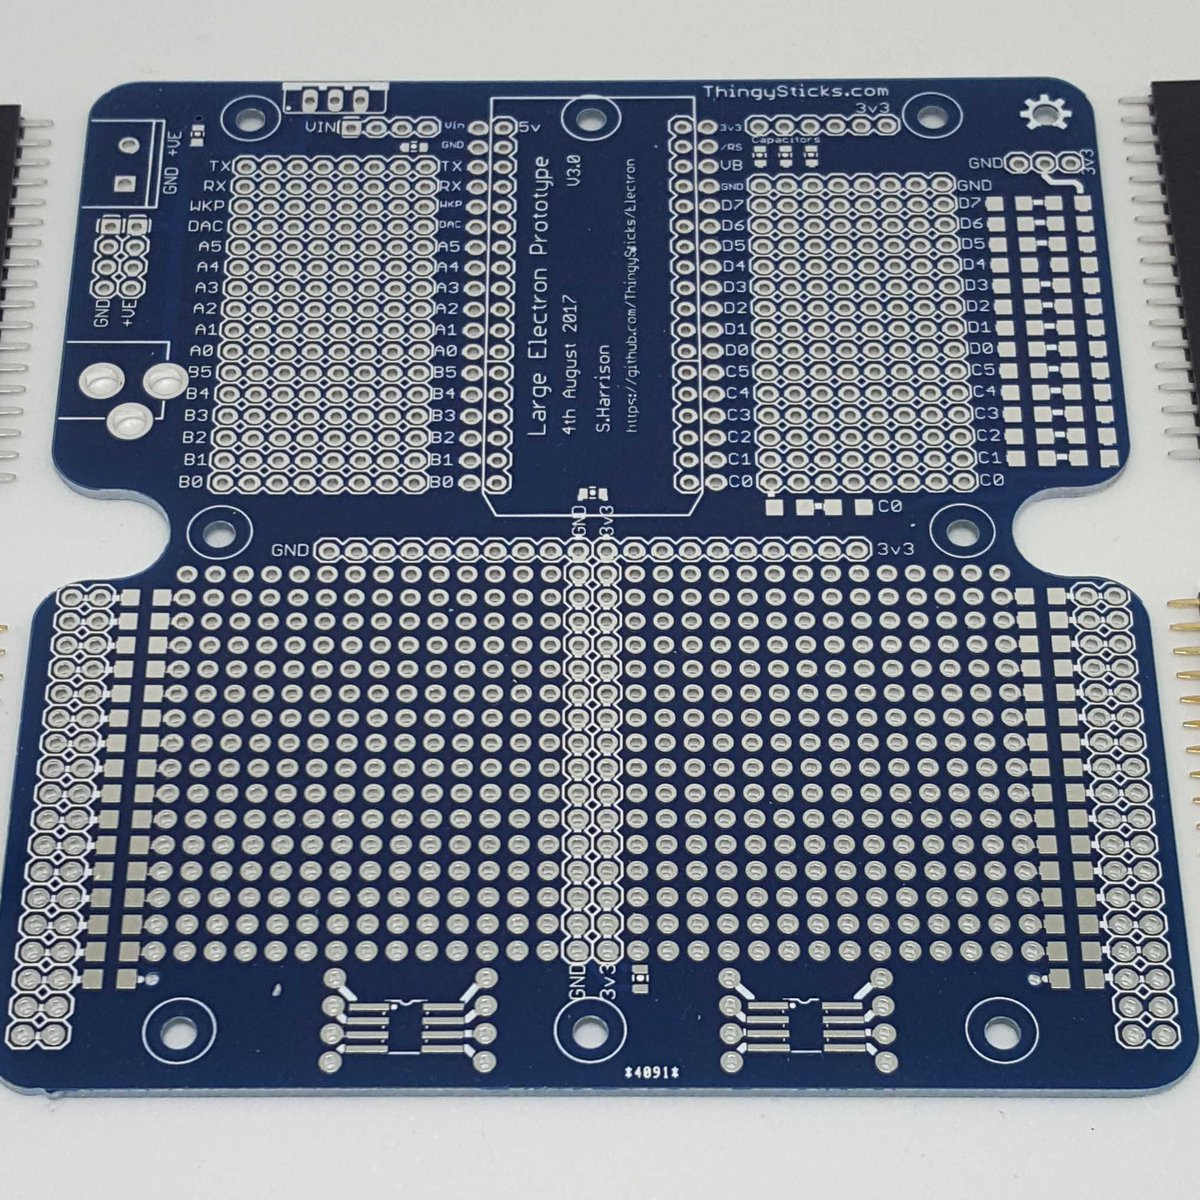 Photon/Electron Prototyping PCB for IP67 Enclosure from